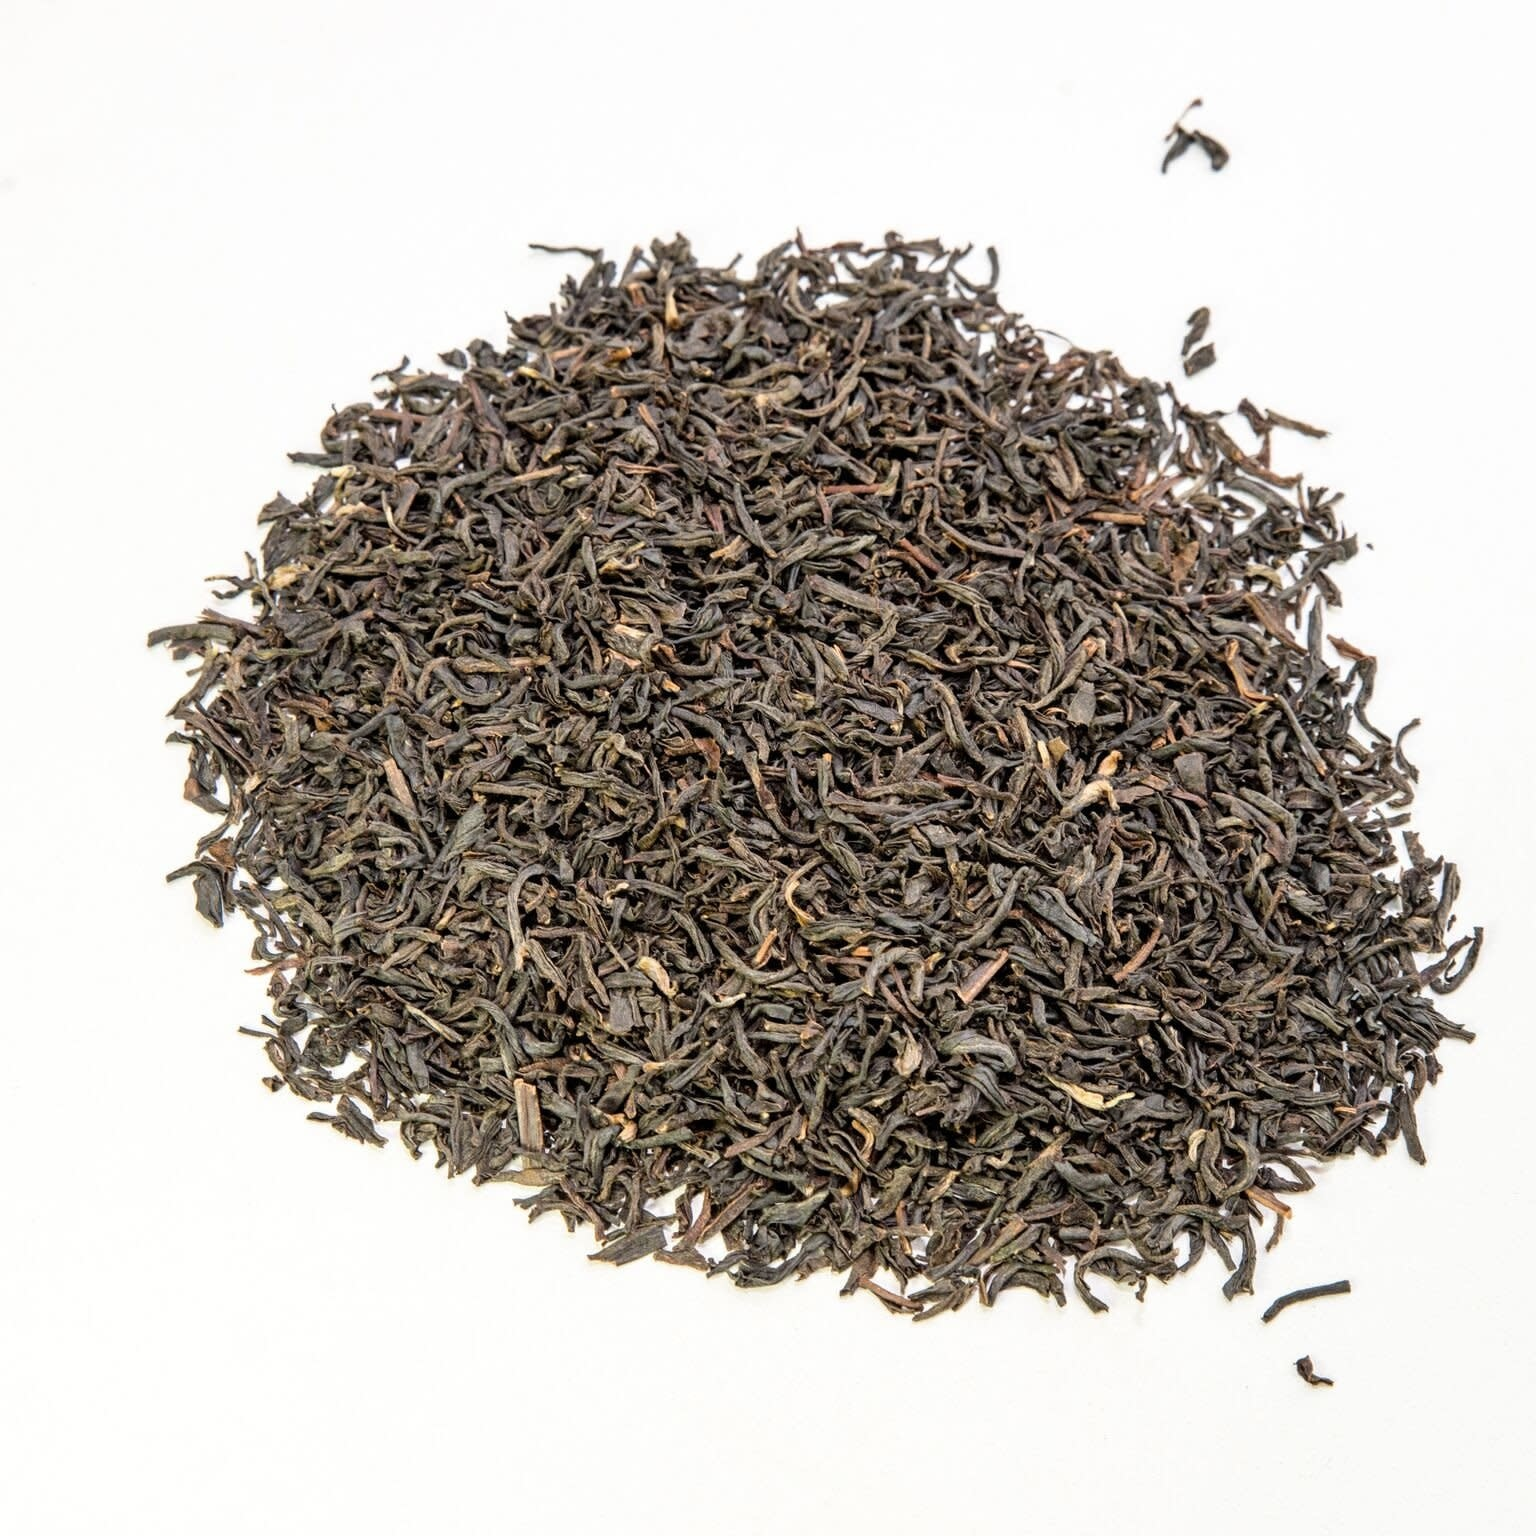 Naked Leaf Organic Assam Bulk Tea 50g